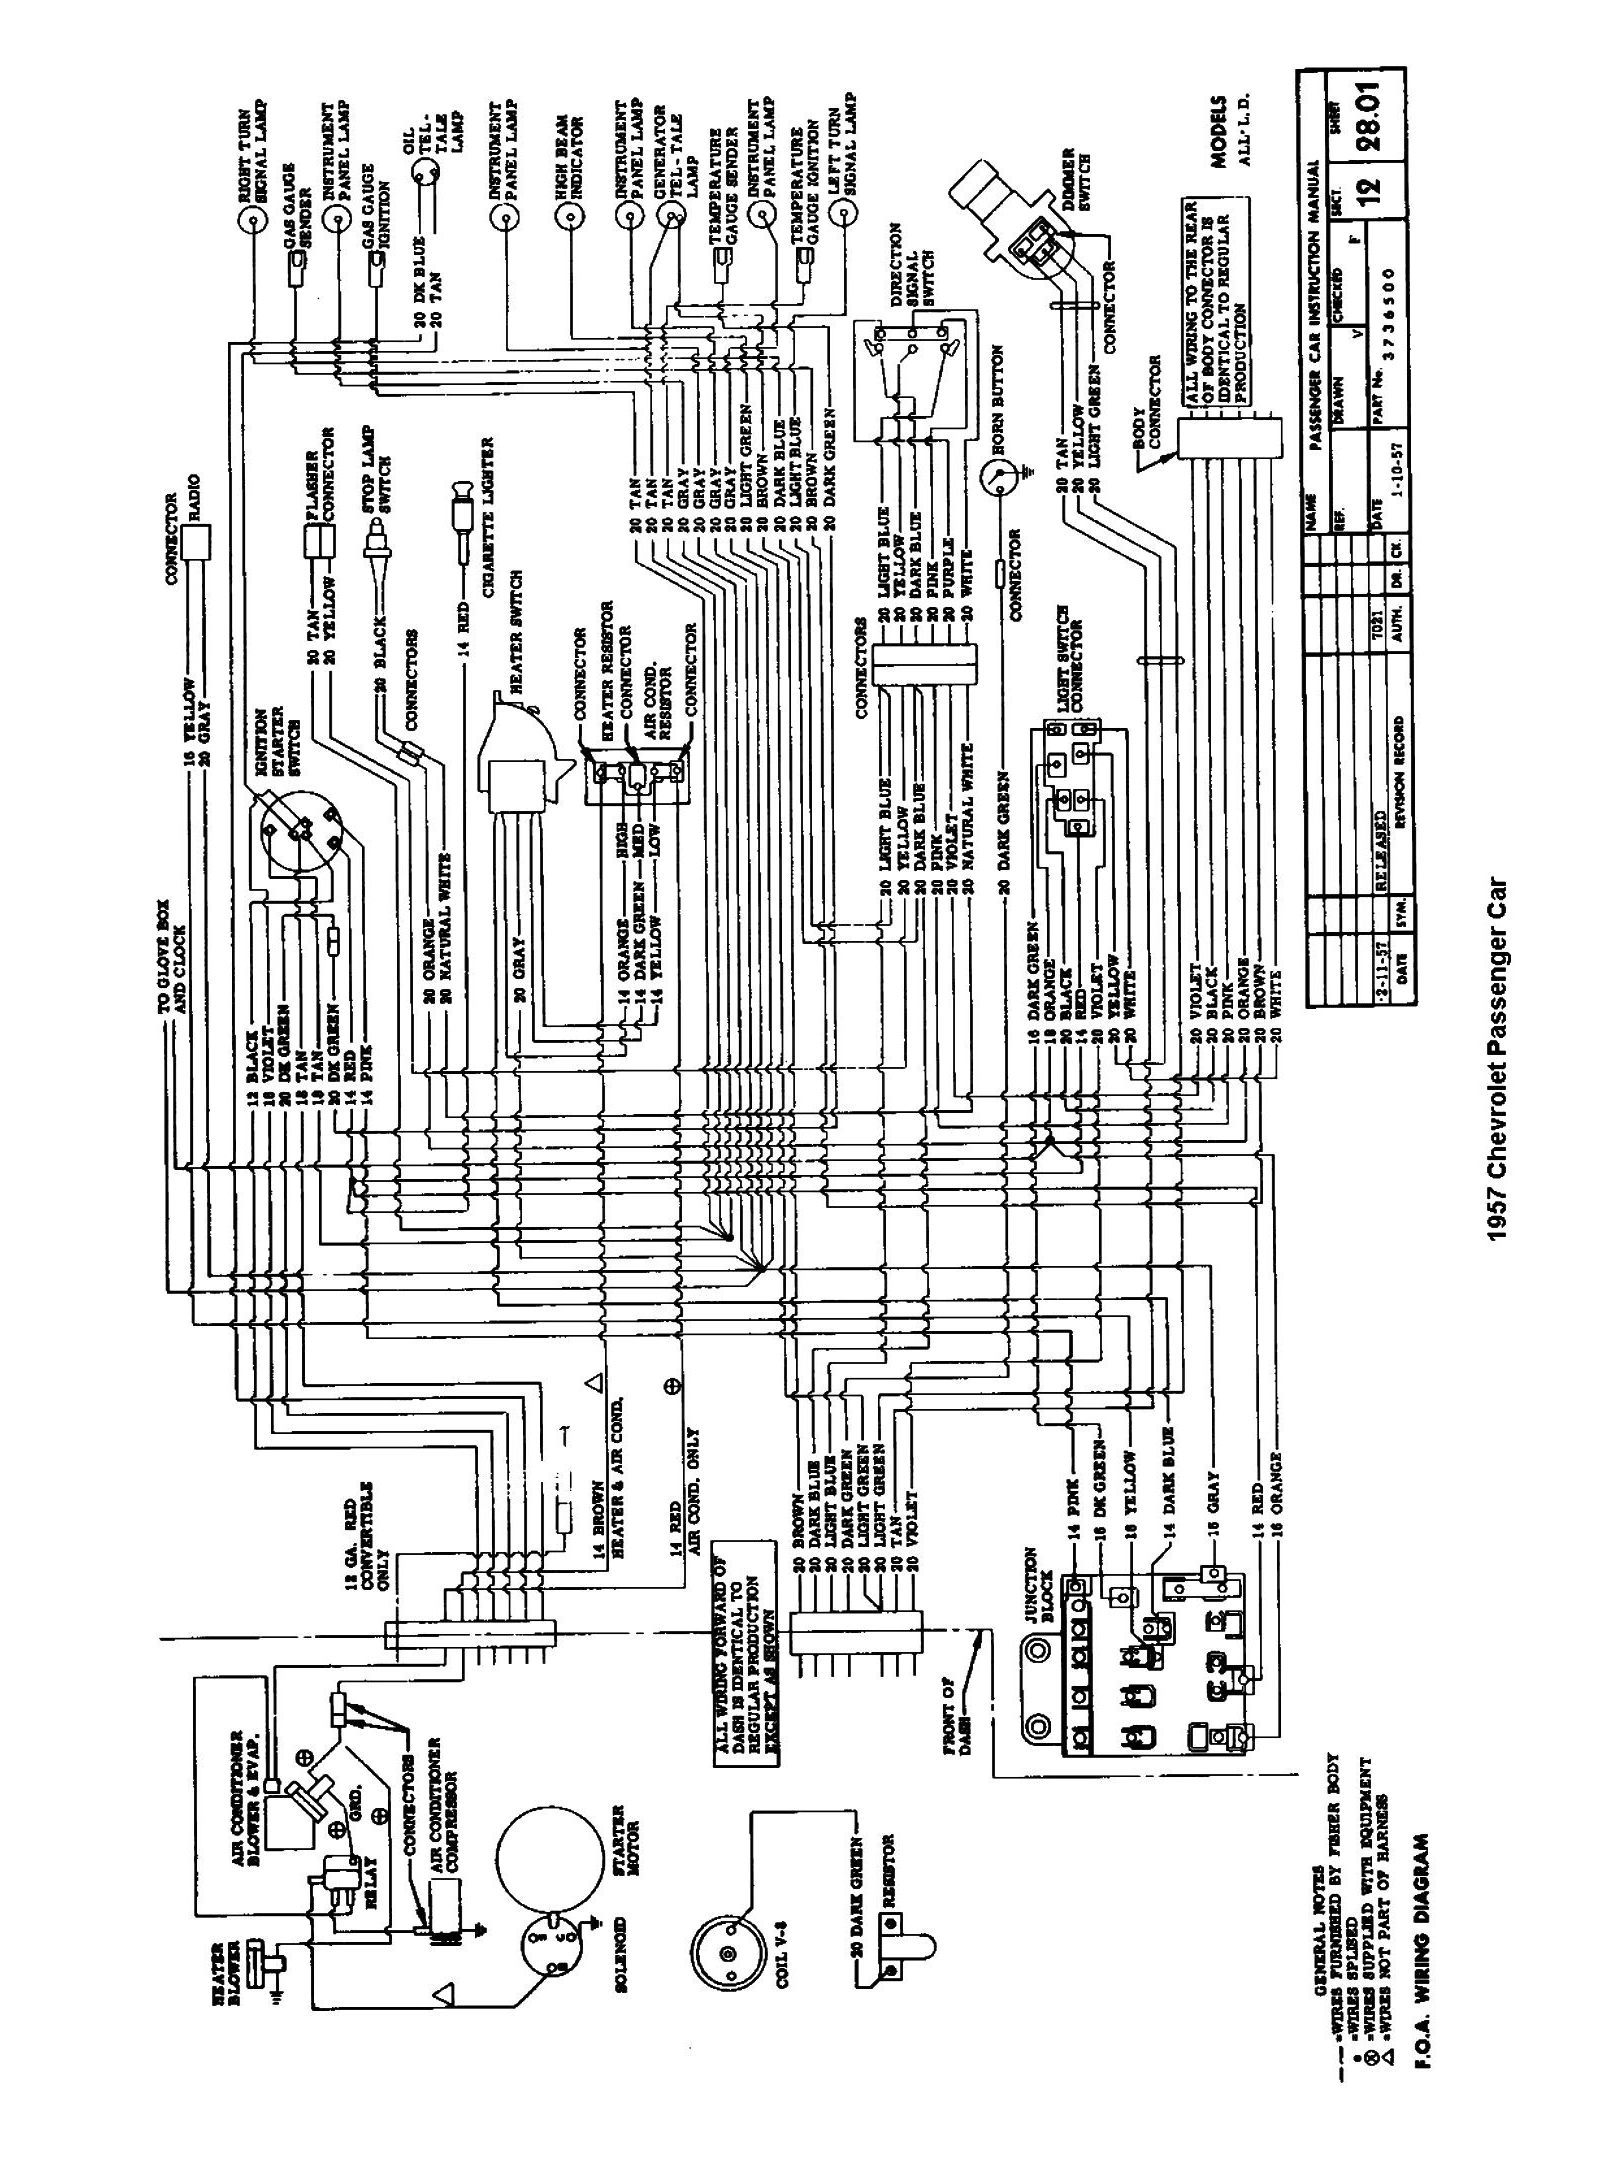 1957 Chevy Wiring Kit Nice Place To Get Diagram 67 Truck Chevrolet Harness Todays Rh 10 6 9 1813weddingbarn Com 57 Schematic Flasher